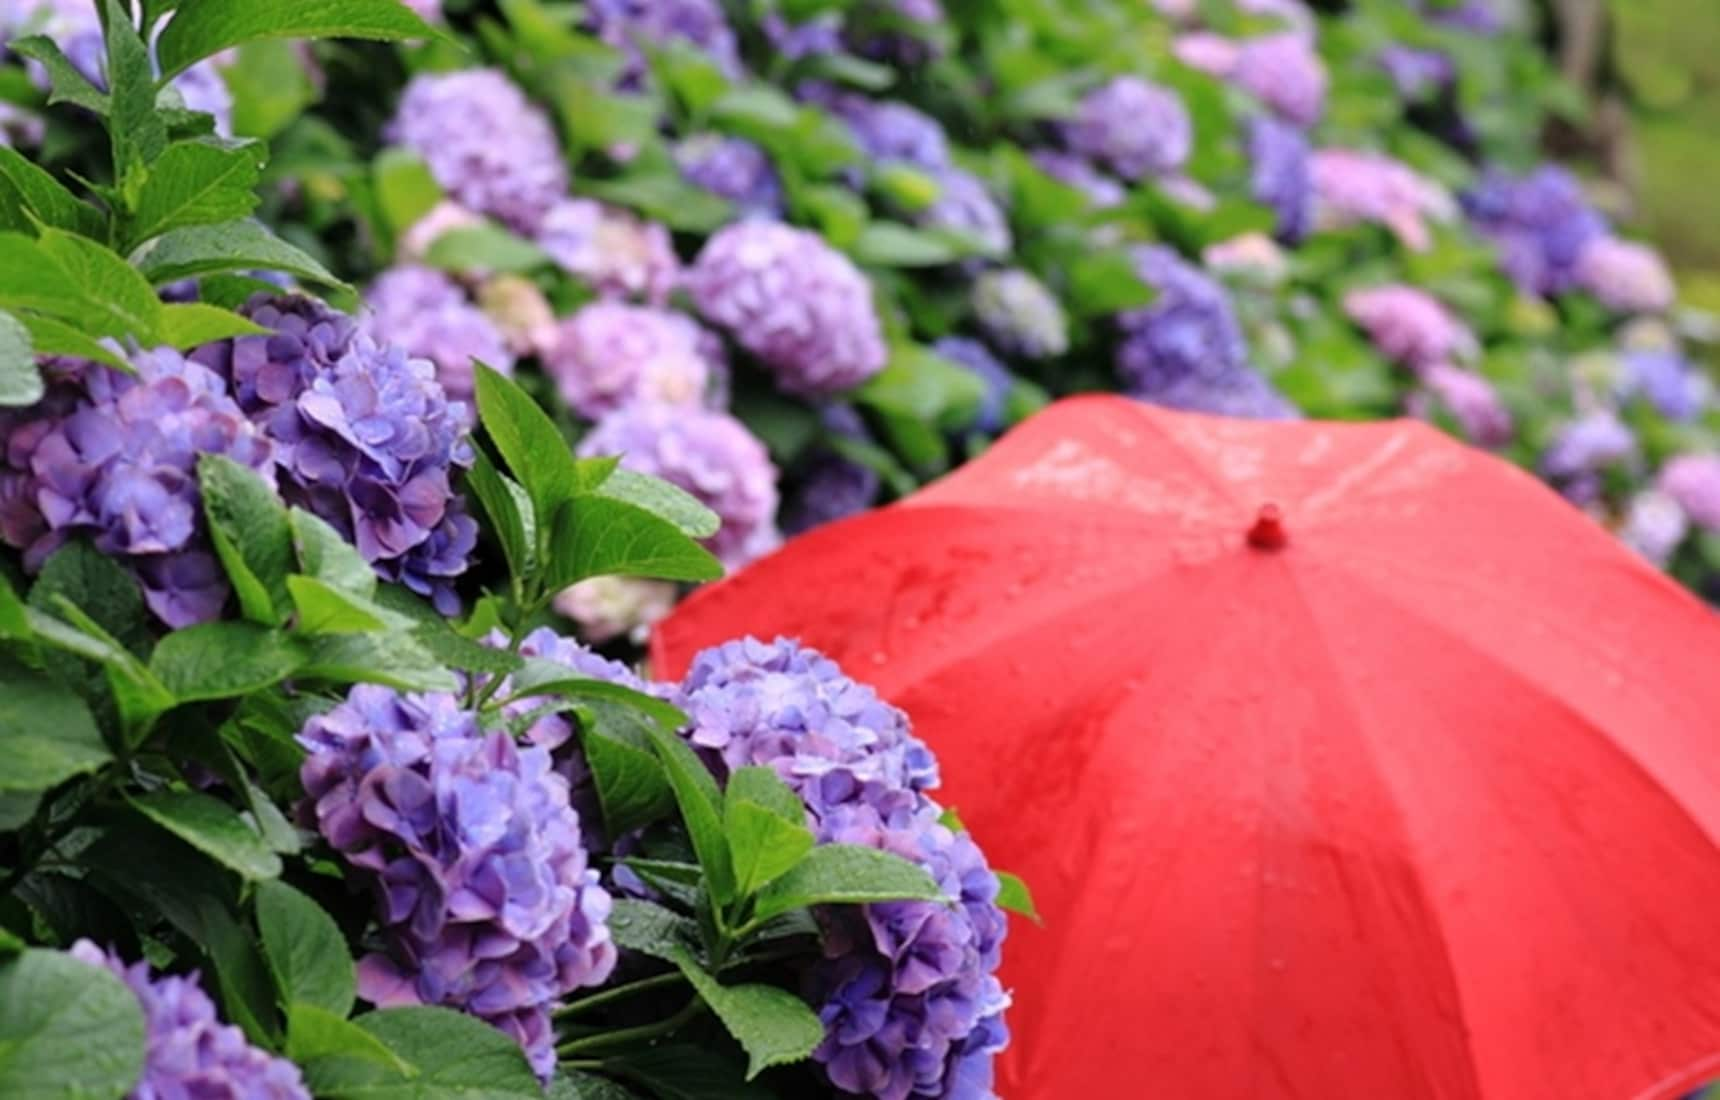 7 More Things to Do on Rainy Days in Tokyo